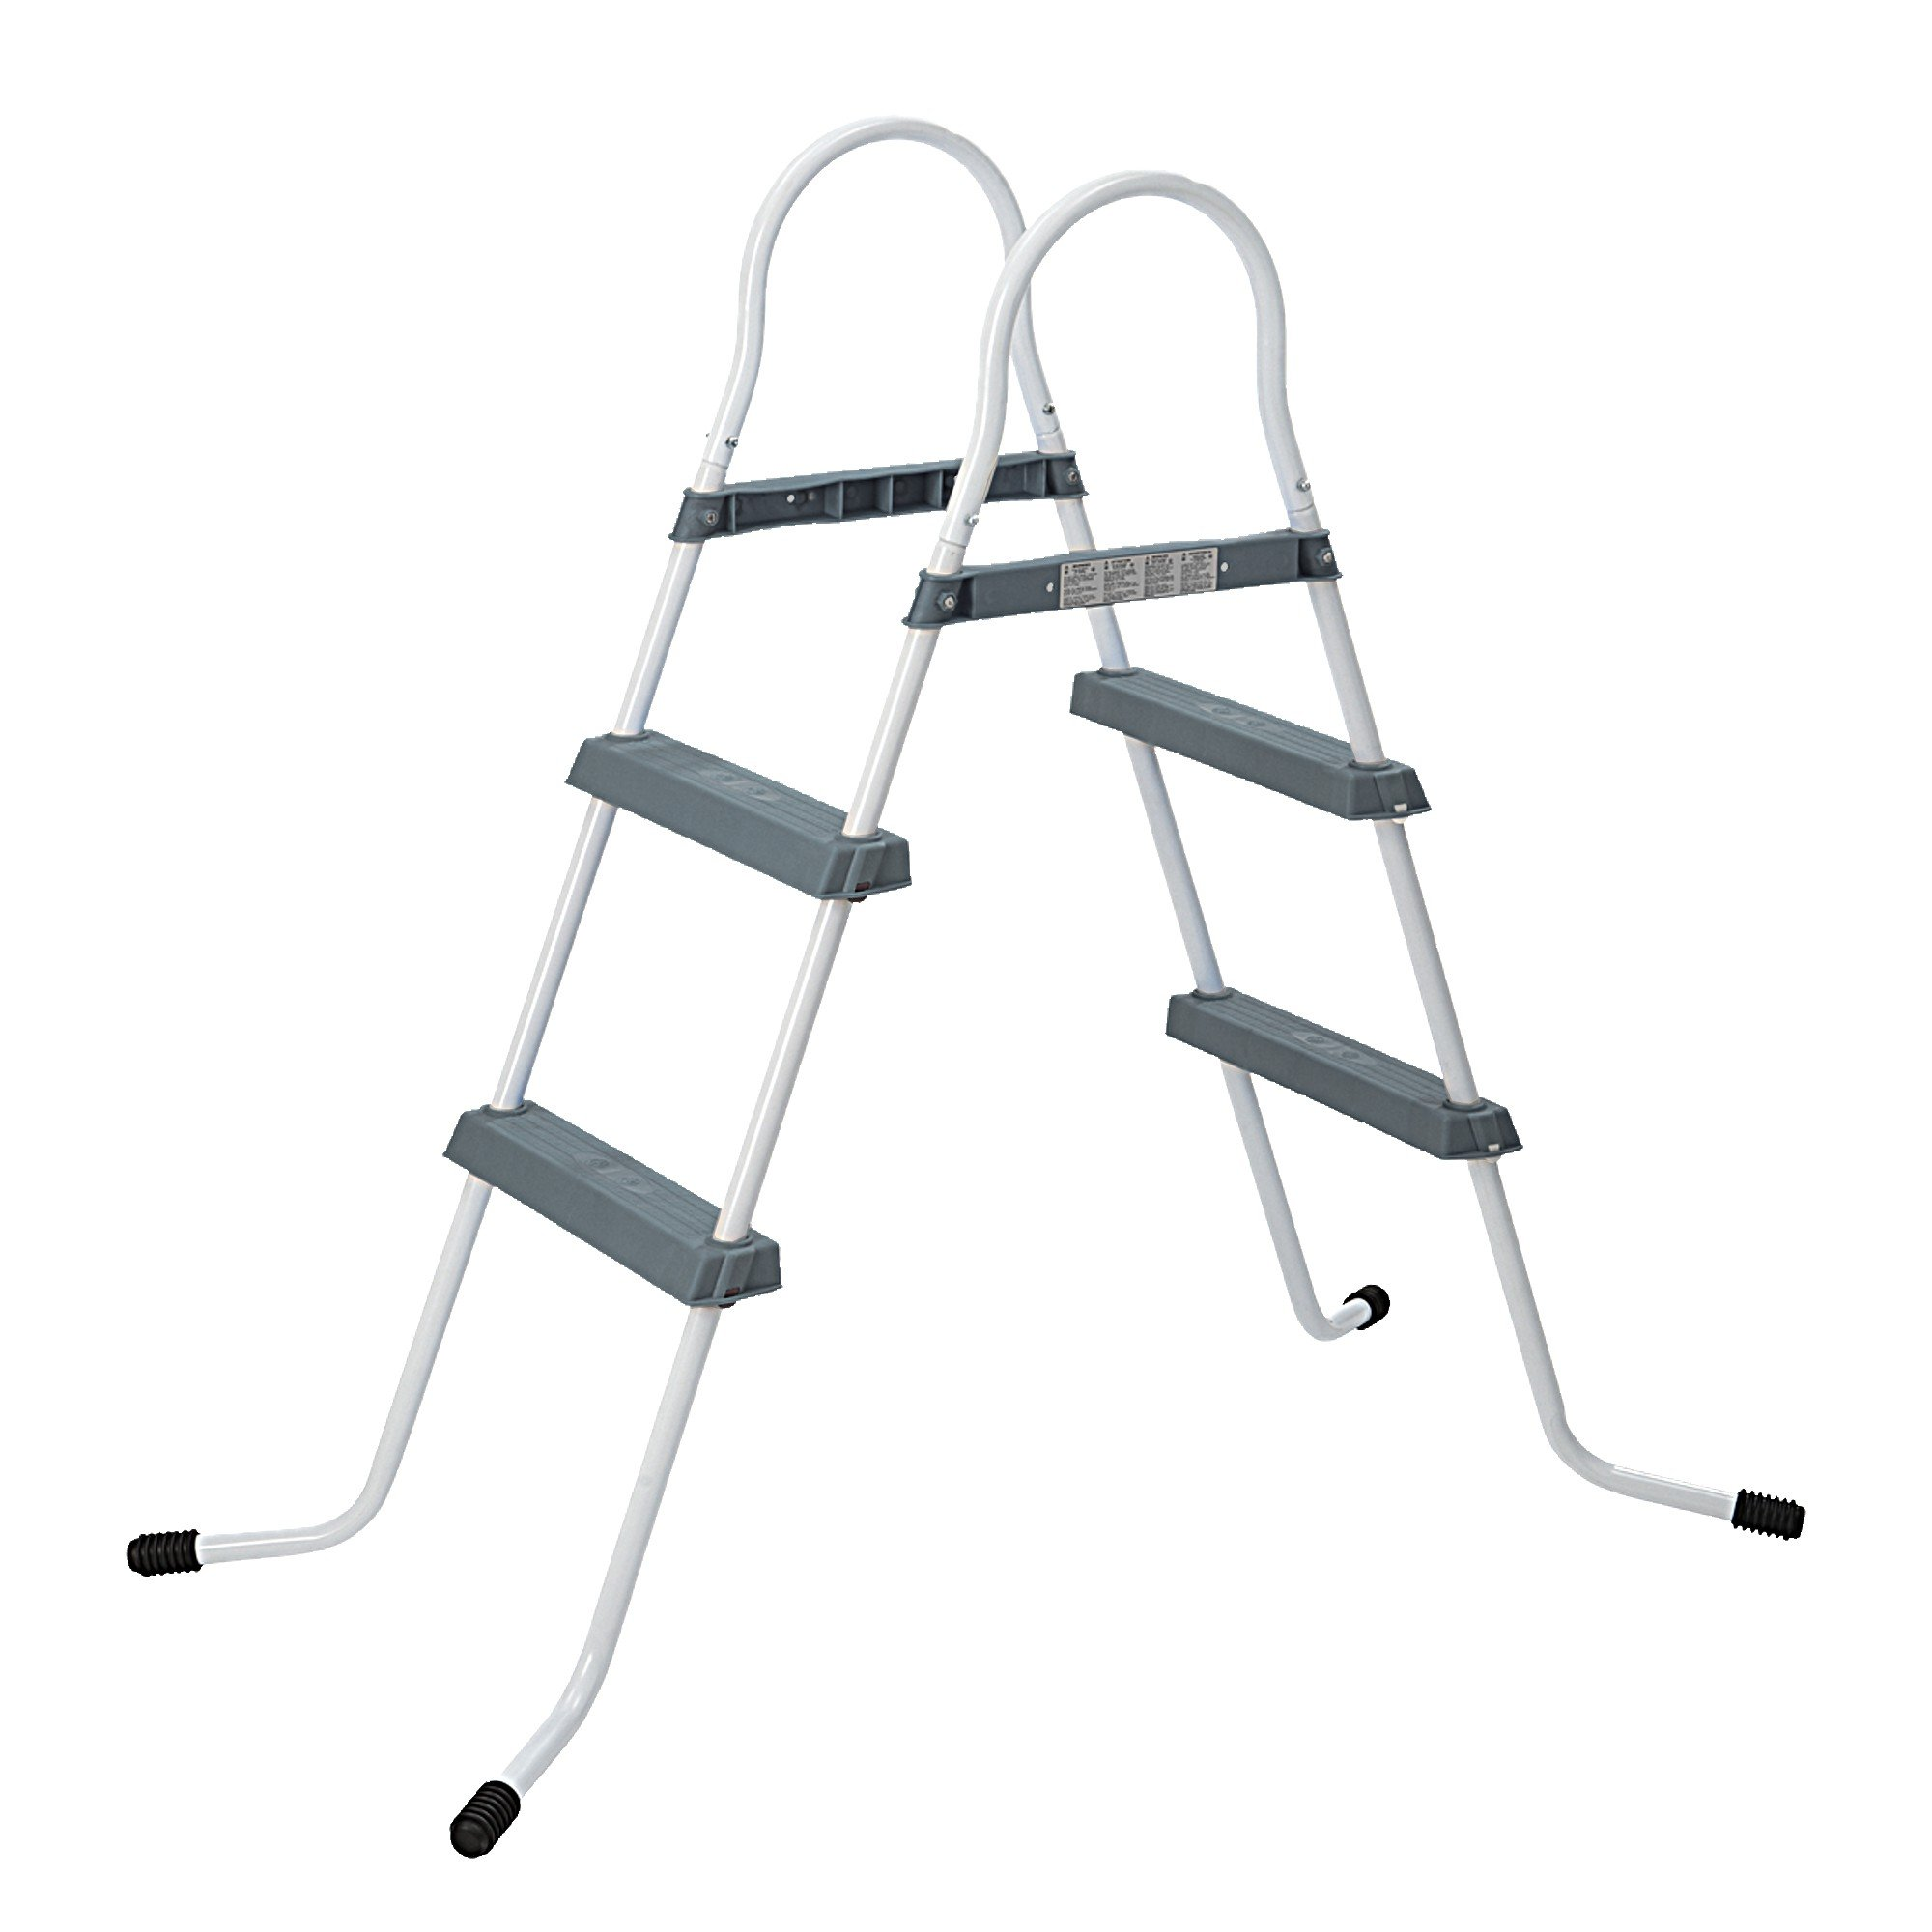 Jilong 2-84 Pool Ladder Grey - Escalera de 2 peldaños, para Piscinas de hasta 84 cm: Amazon.es: Jardín